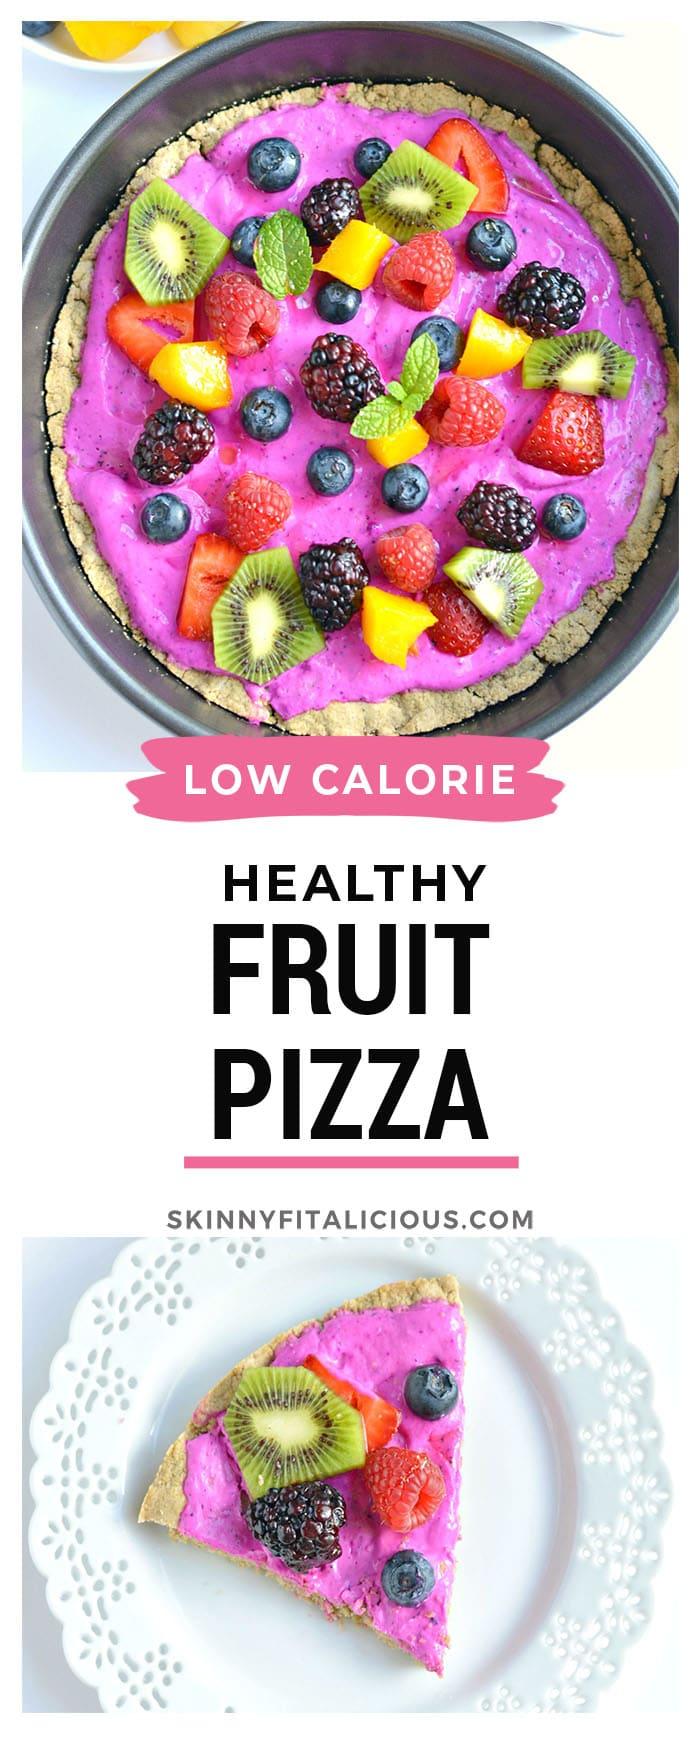 Healthy Fruit Pizza made with a simple oat crust and topped with a Greek yogurt topping and berries. A delicious low calorie summer dessert! Low Calorie + Gluten Free